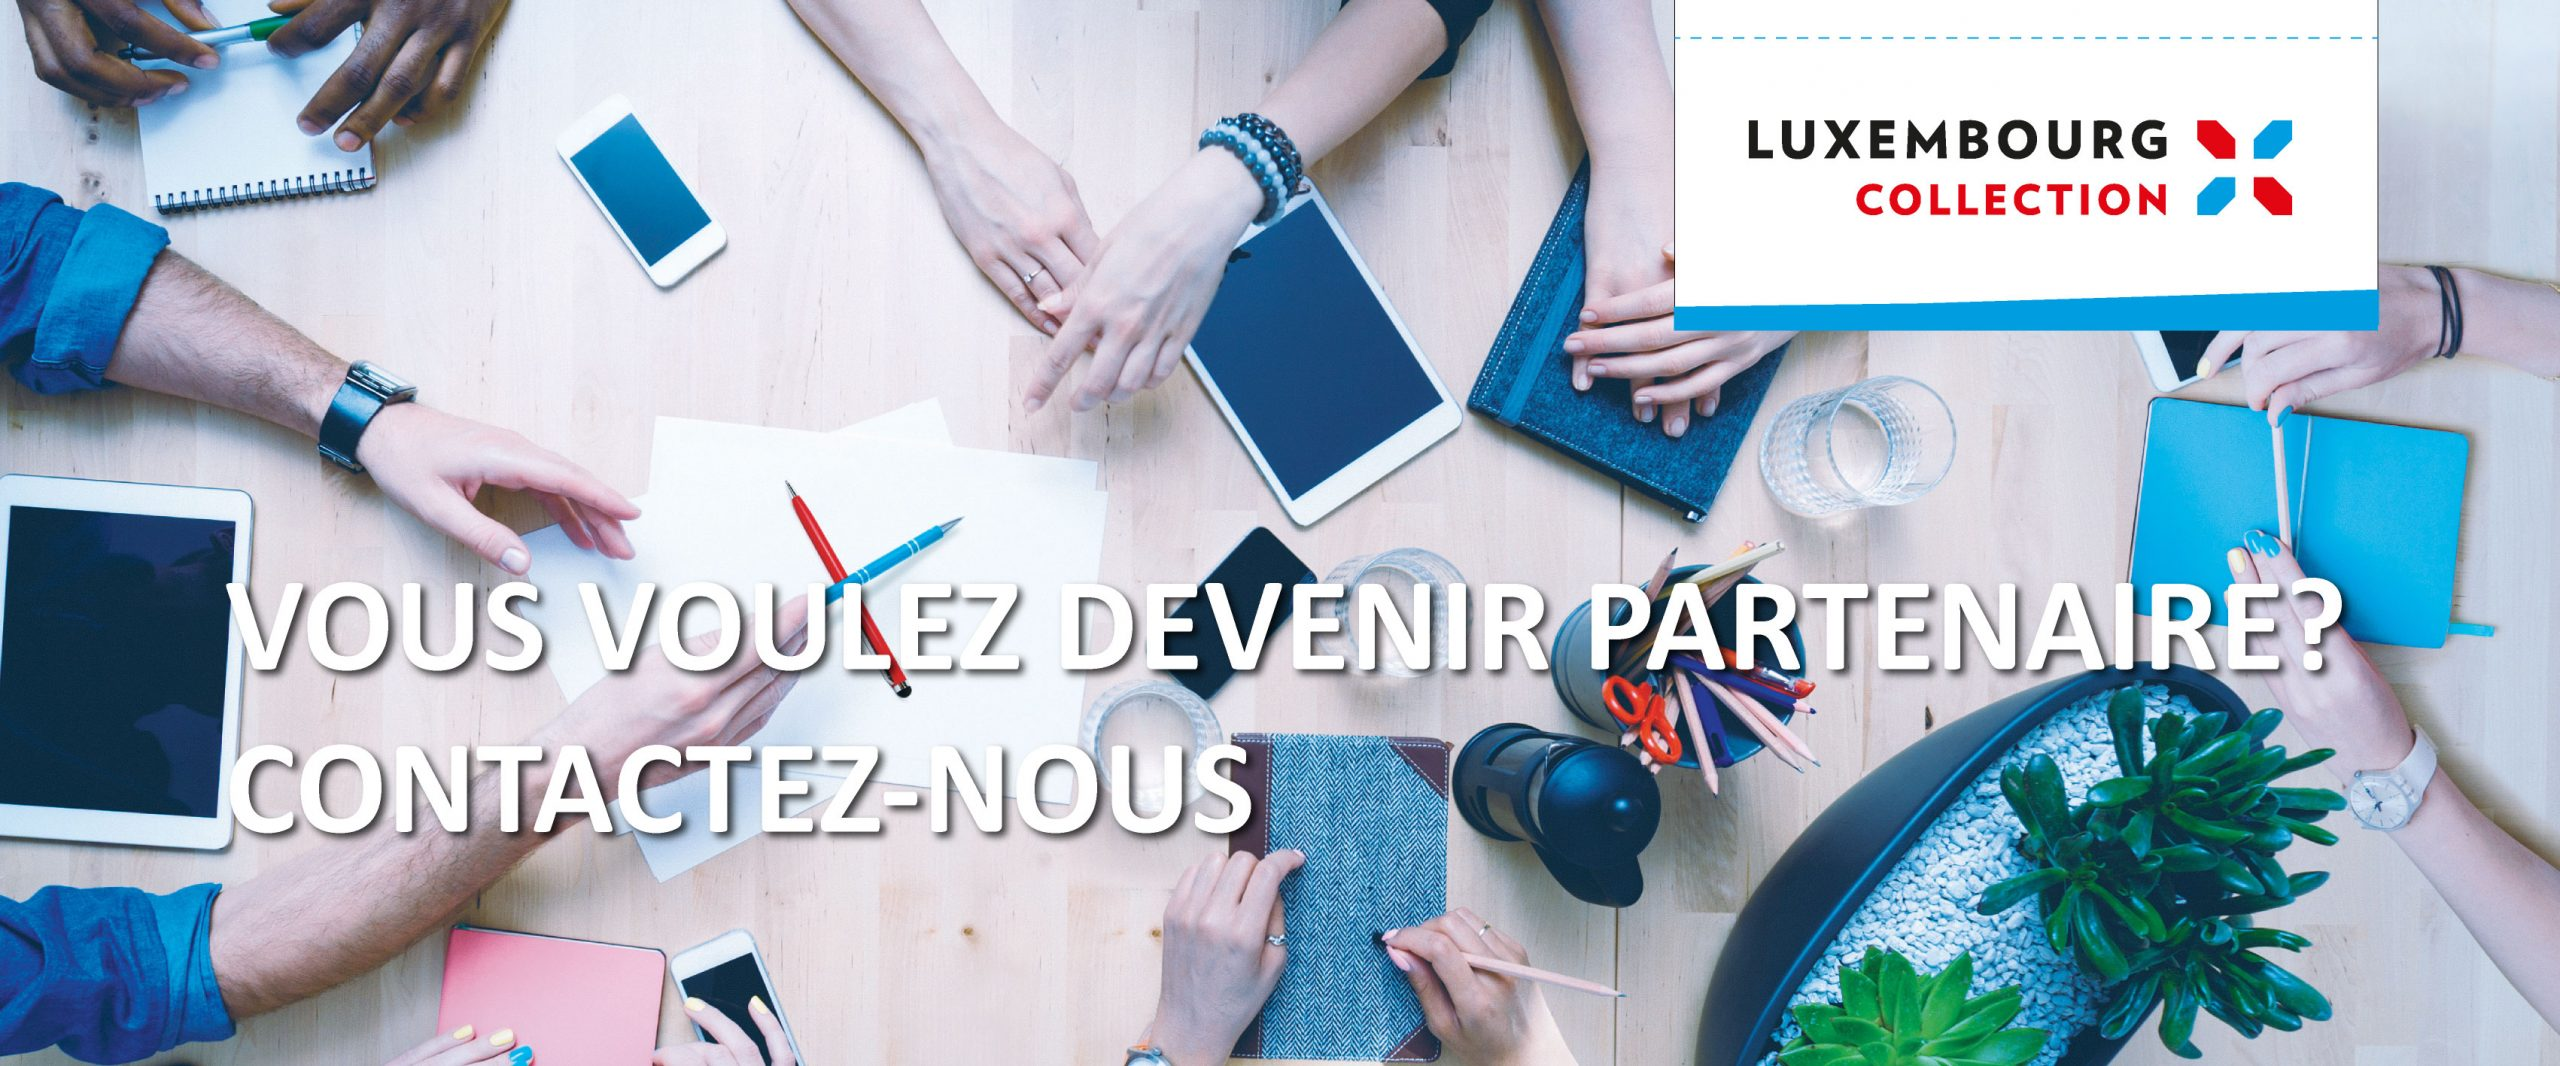 Luxembourg Collection Partenaire